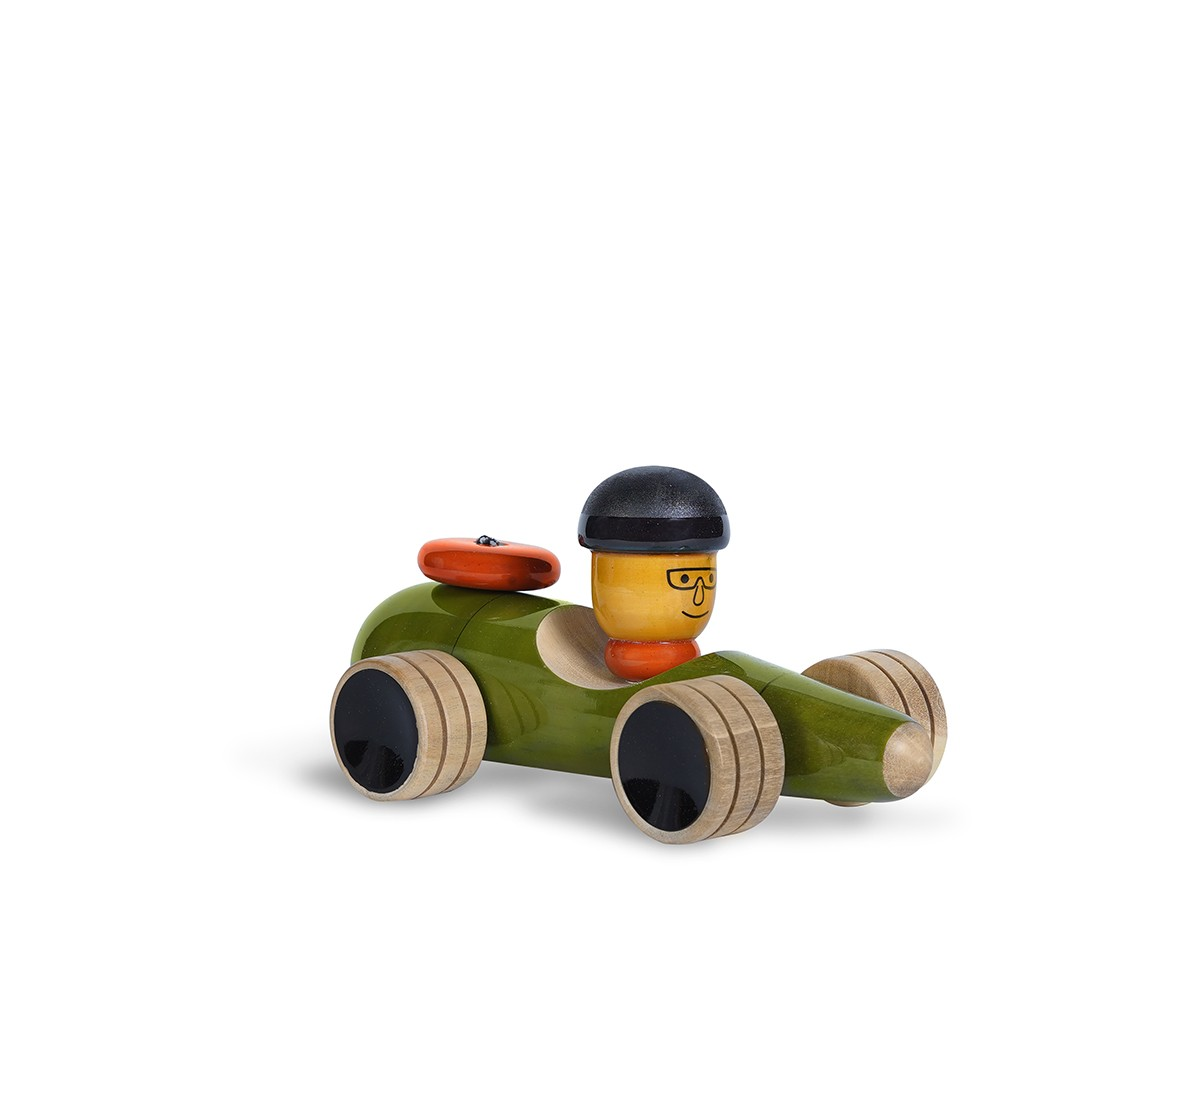 Folktales Handmade Wooden Vroom Toy 3 Wooden Toys for Kids age 1Y+ (Green)